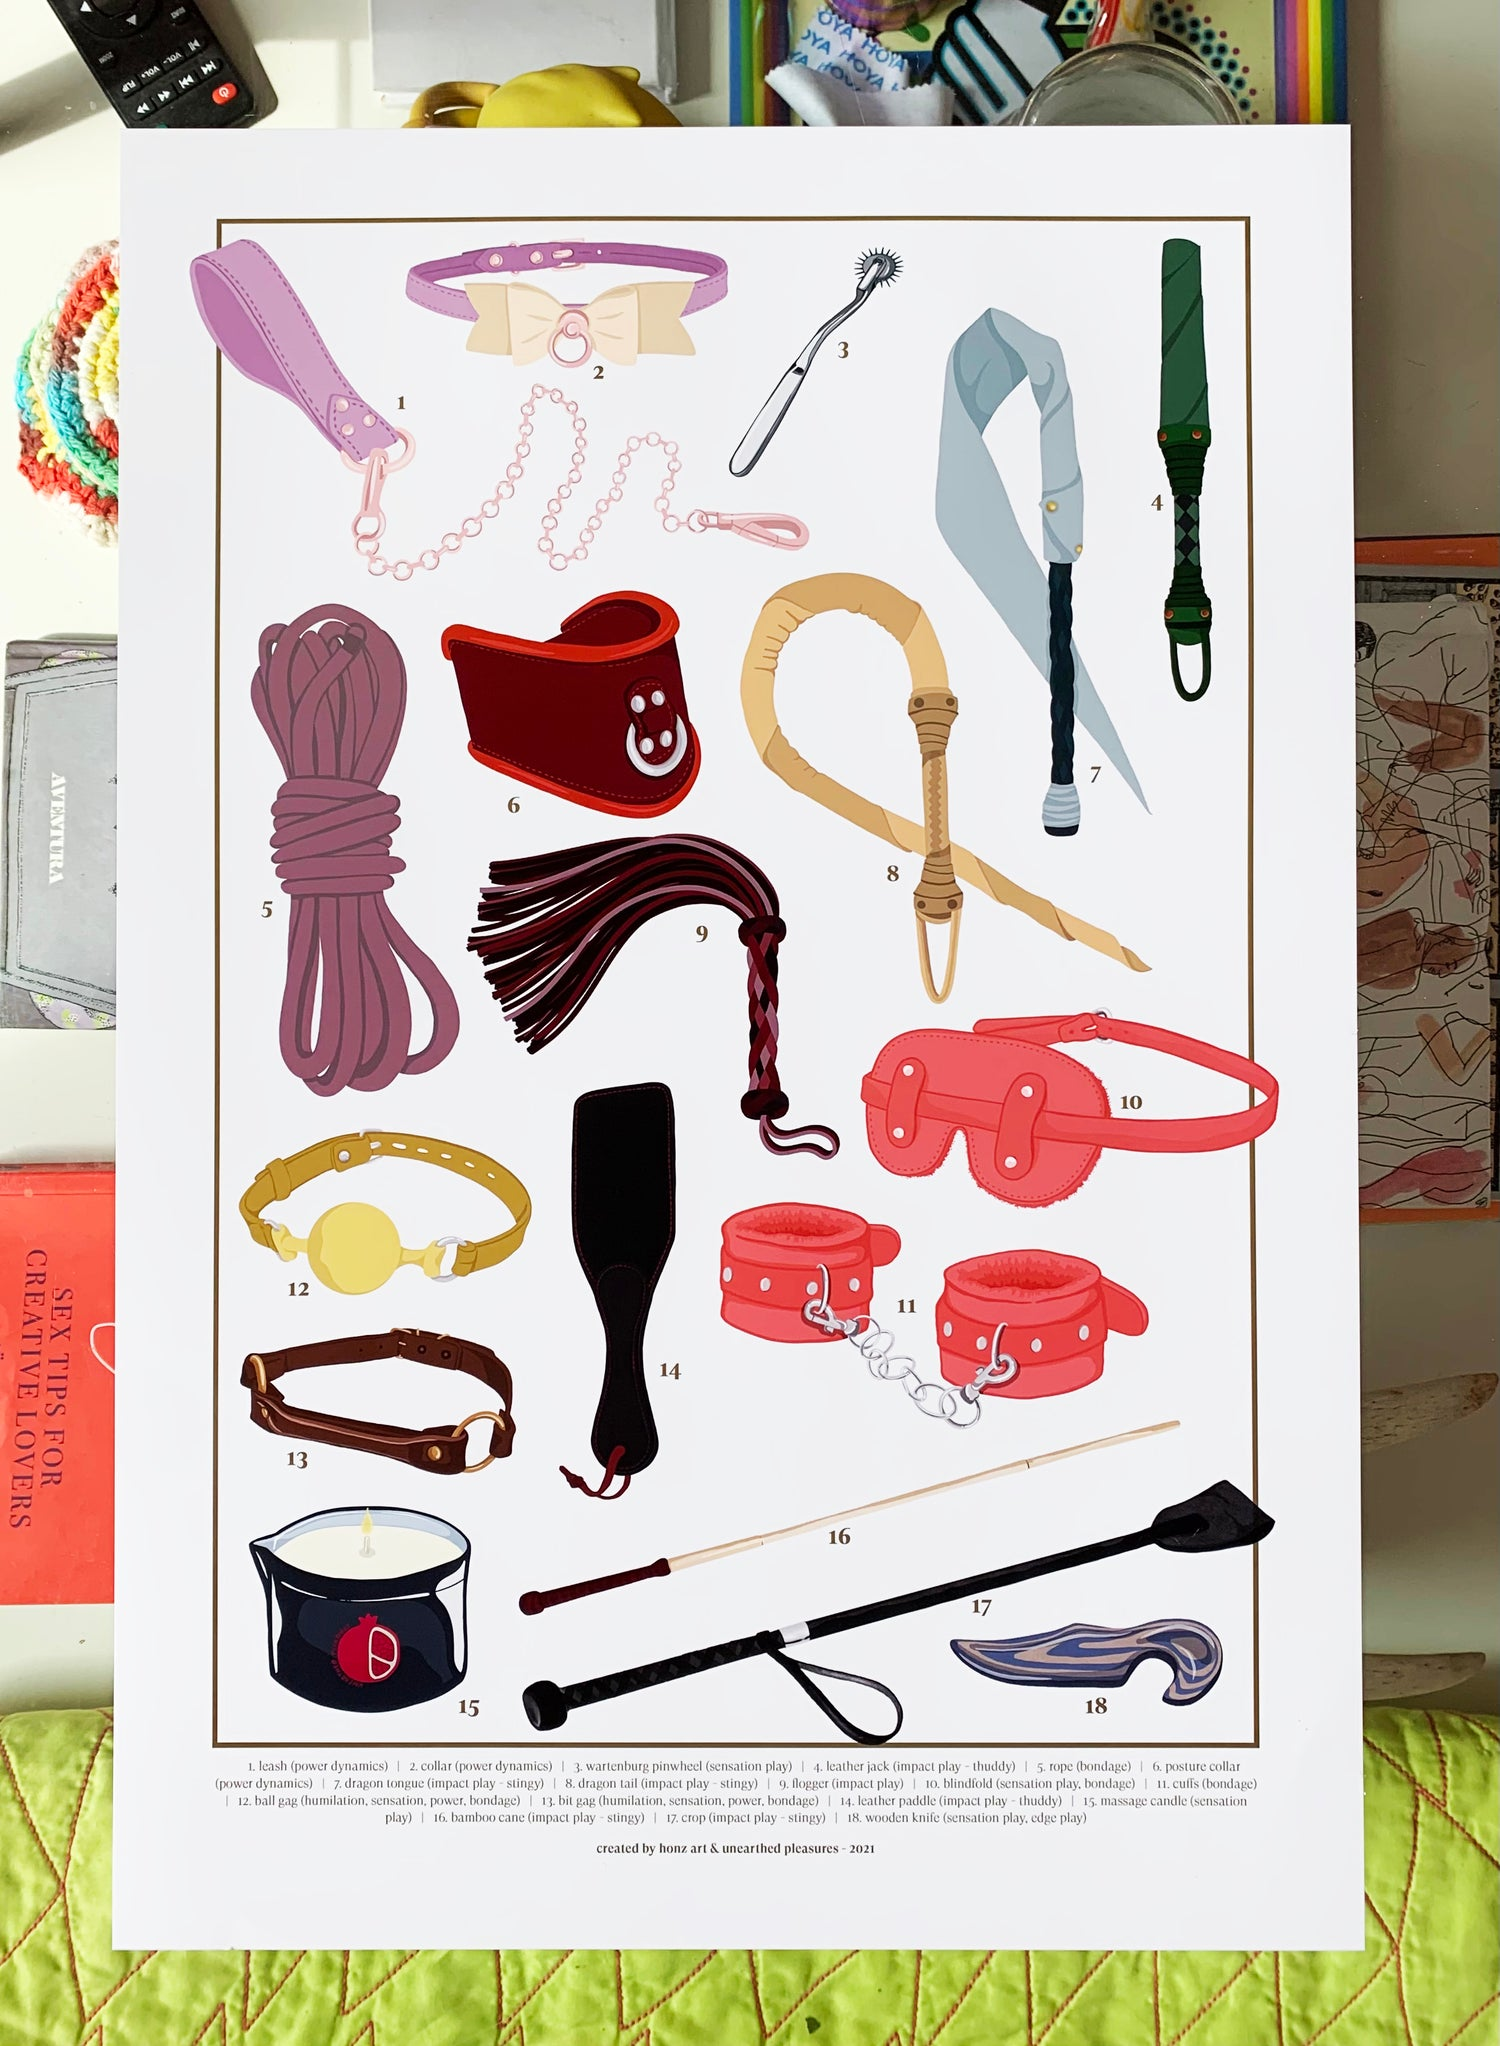 Kink Toy Poster x Unearthed Pleasures